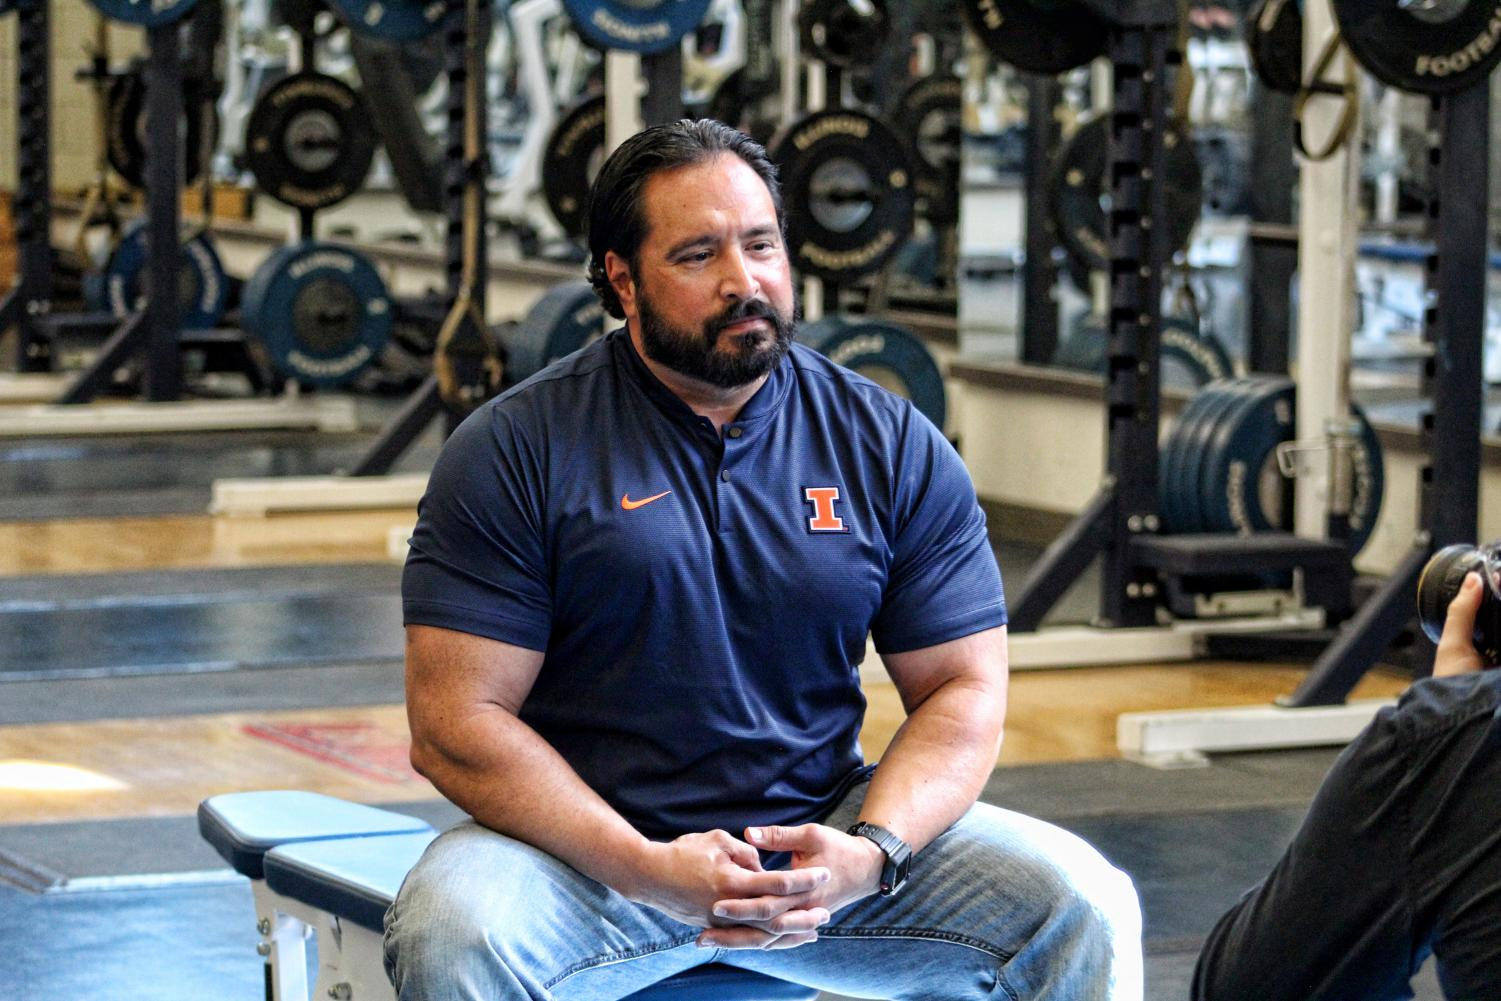 Lou Hernandez returns to Illinois after seven seasons at North Carolina. Hernandez also served as the Illini's strength and conditioning coach from 2005-2011 under Ron Zook.